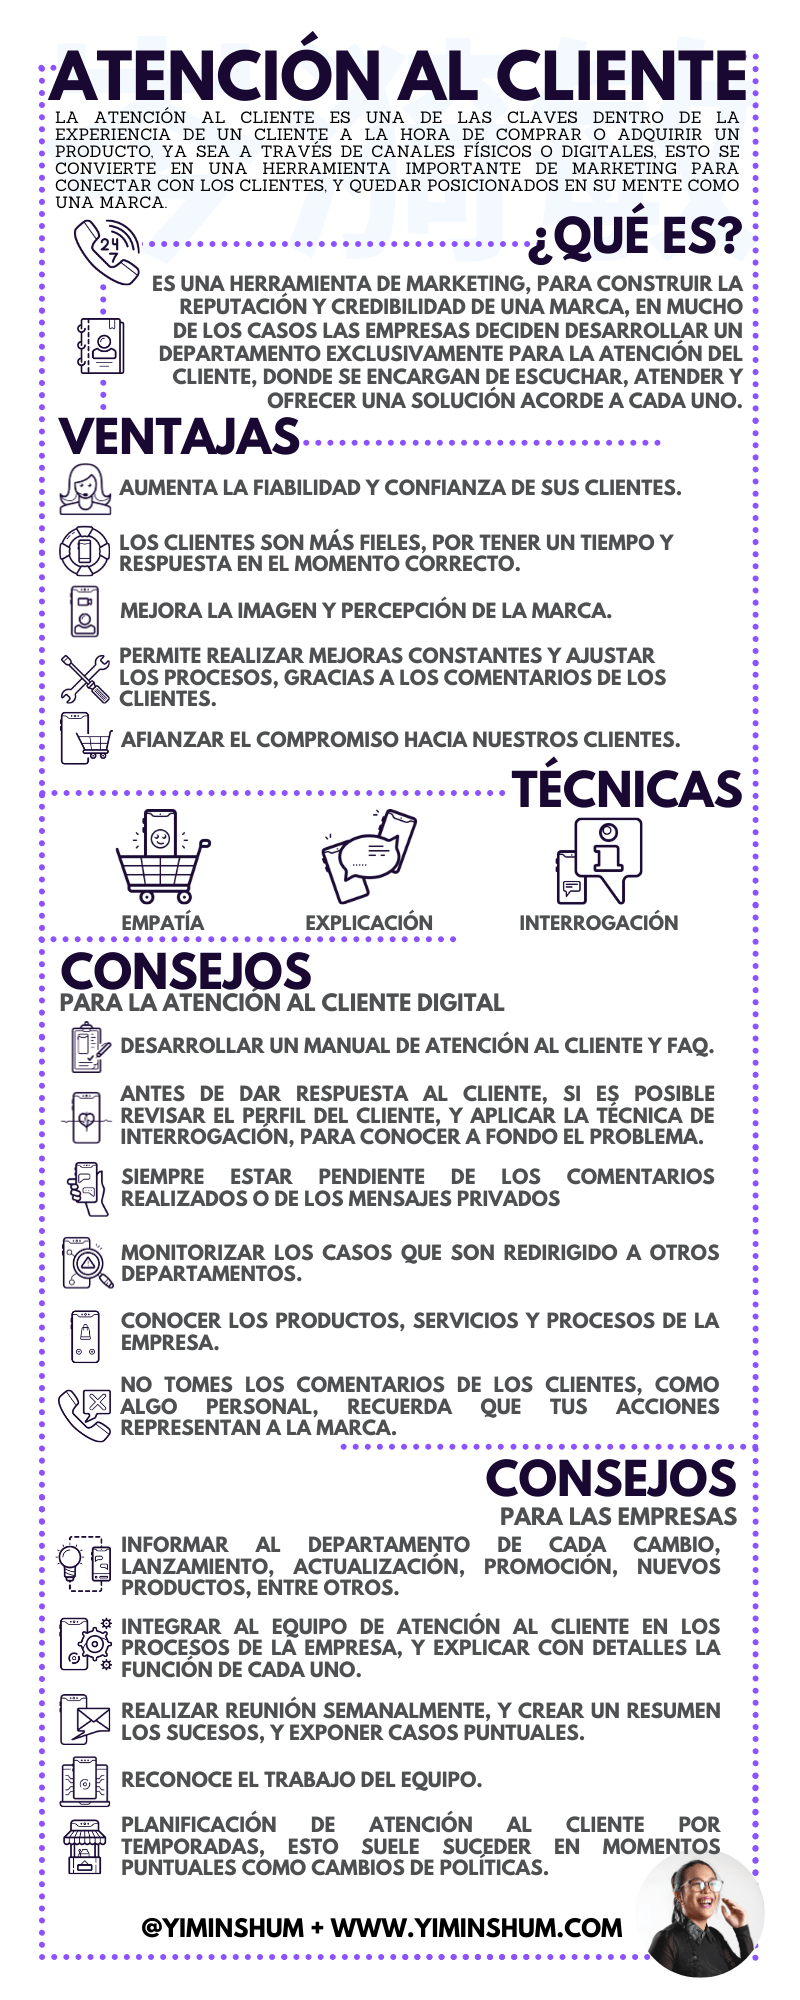 Atención al cliente #infografia #infographic #marketing